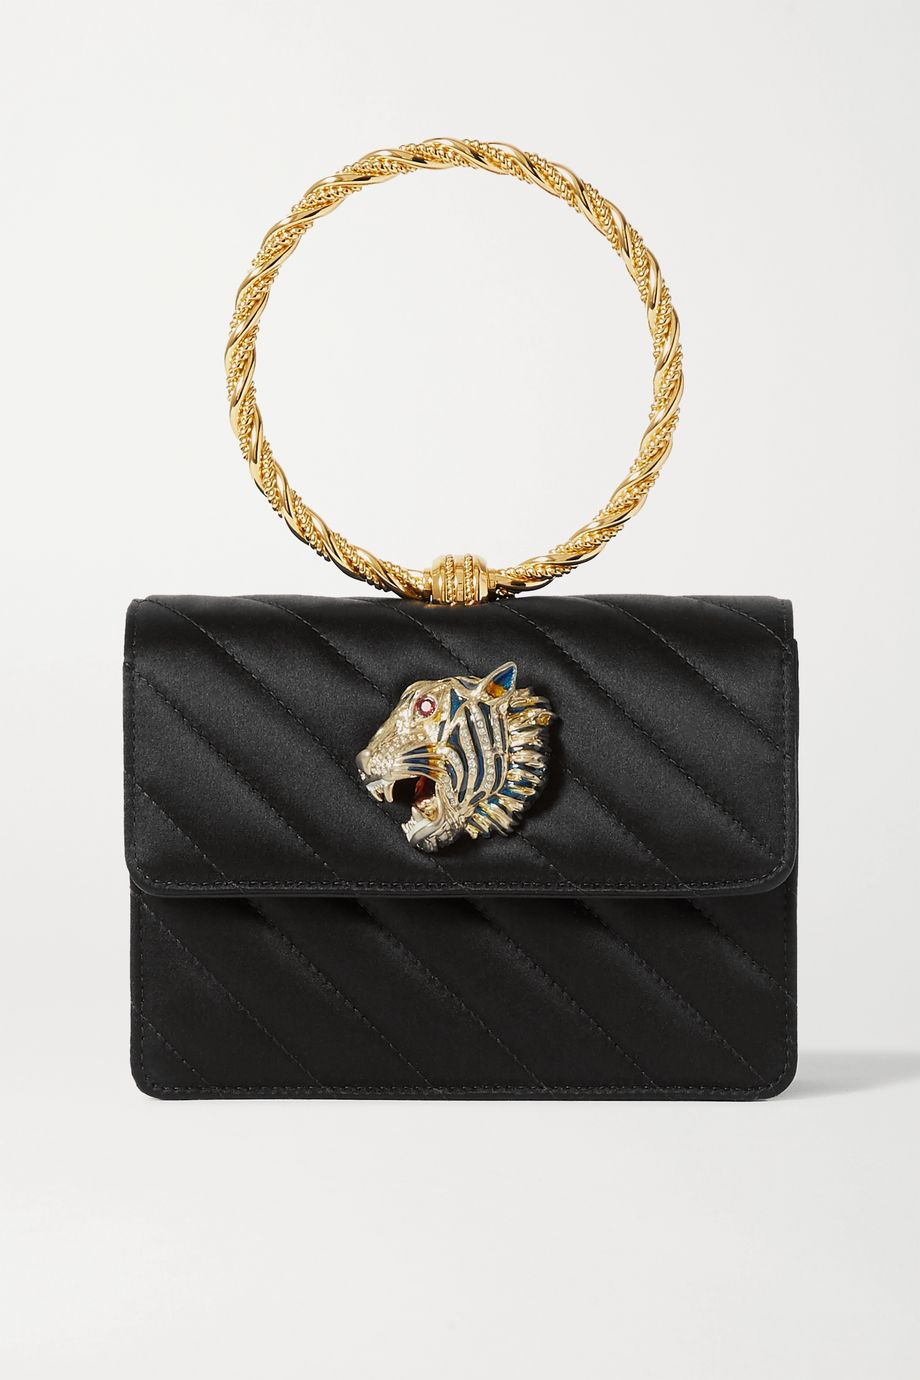 Gucci Broadway embellished quilted satin tote